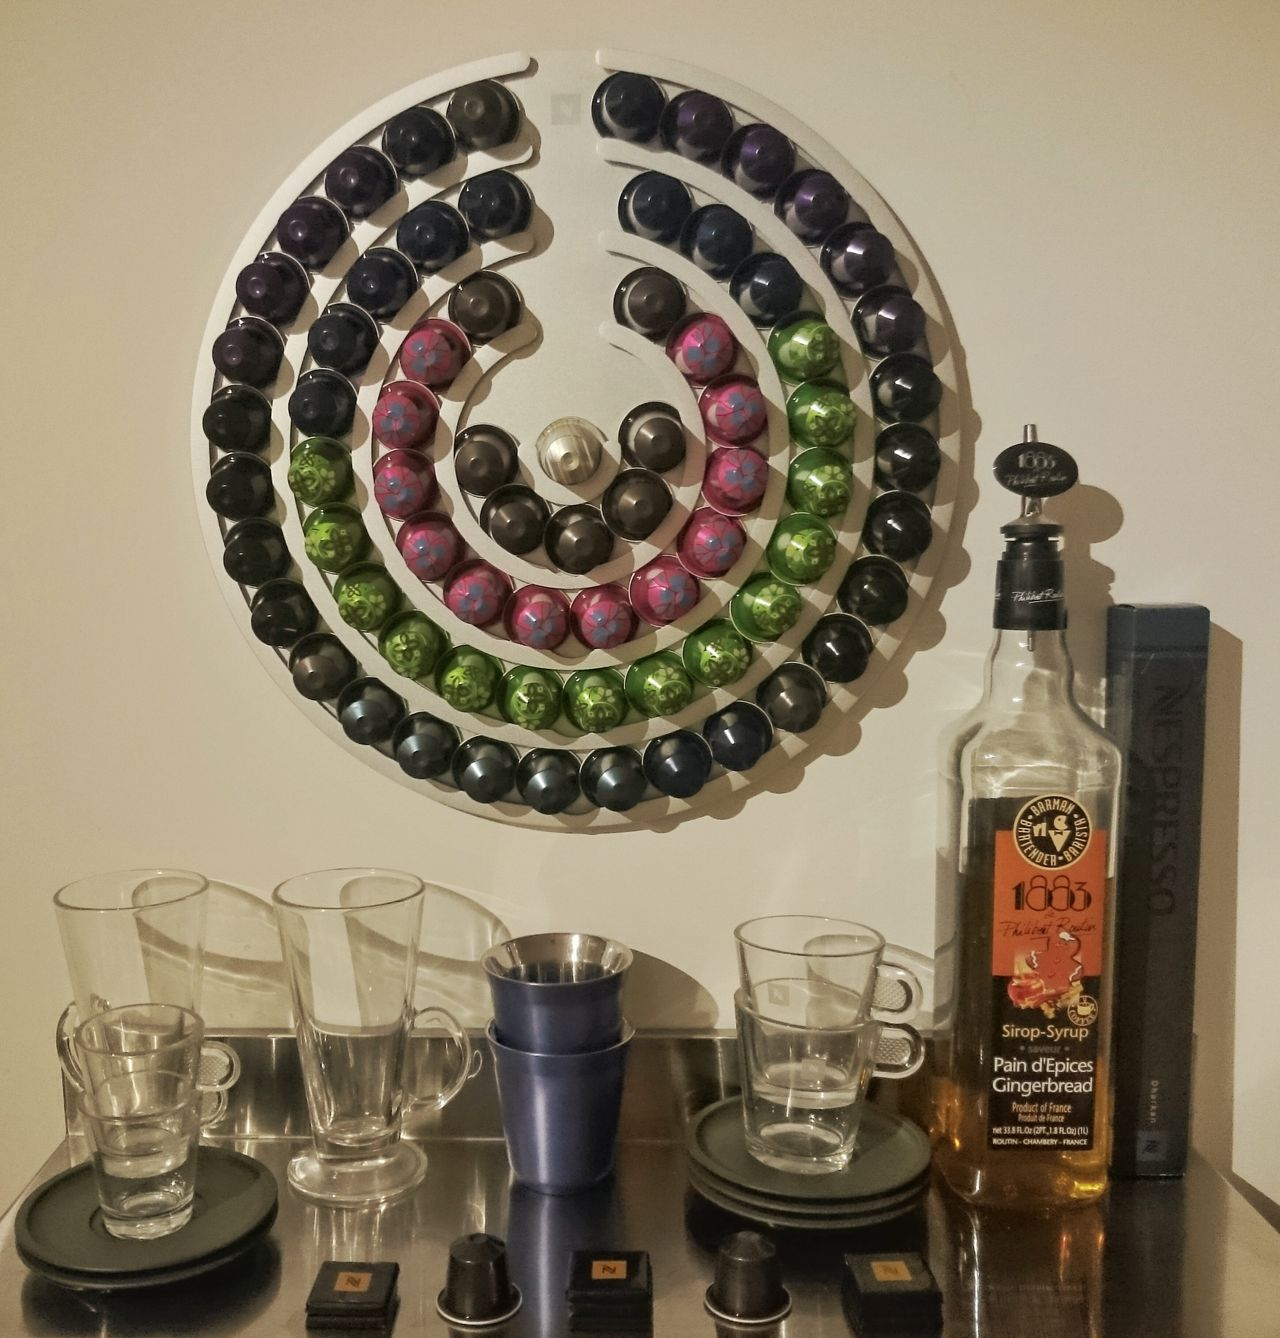 Coffee Setup // Coffee Drink Cups Glasses Syrup Pods Organization Organisation Saucers Setup Set Up Wall Art Home Morning Beverage Relax Wall Creative Tidy Clean Colours Nespresso Nespresso Time Nespressomoments Tasty